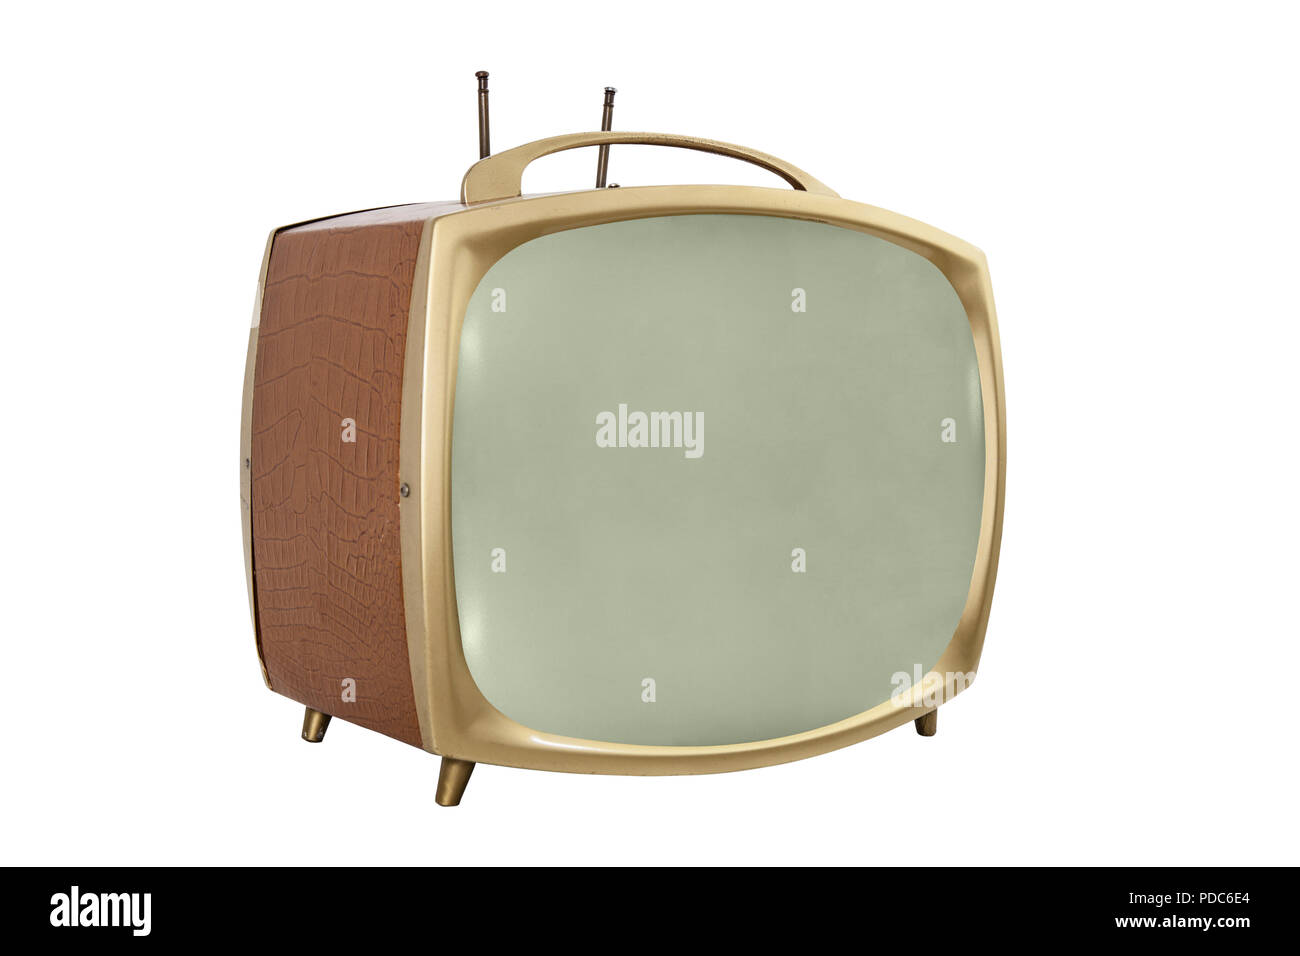 Retro 1950s portable television with off screen. - Stock Image